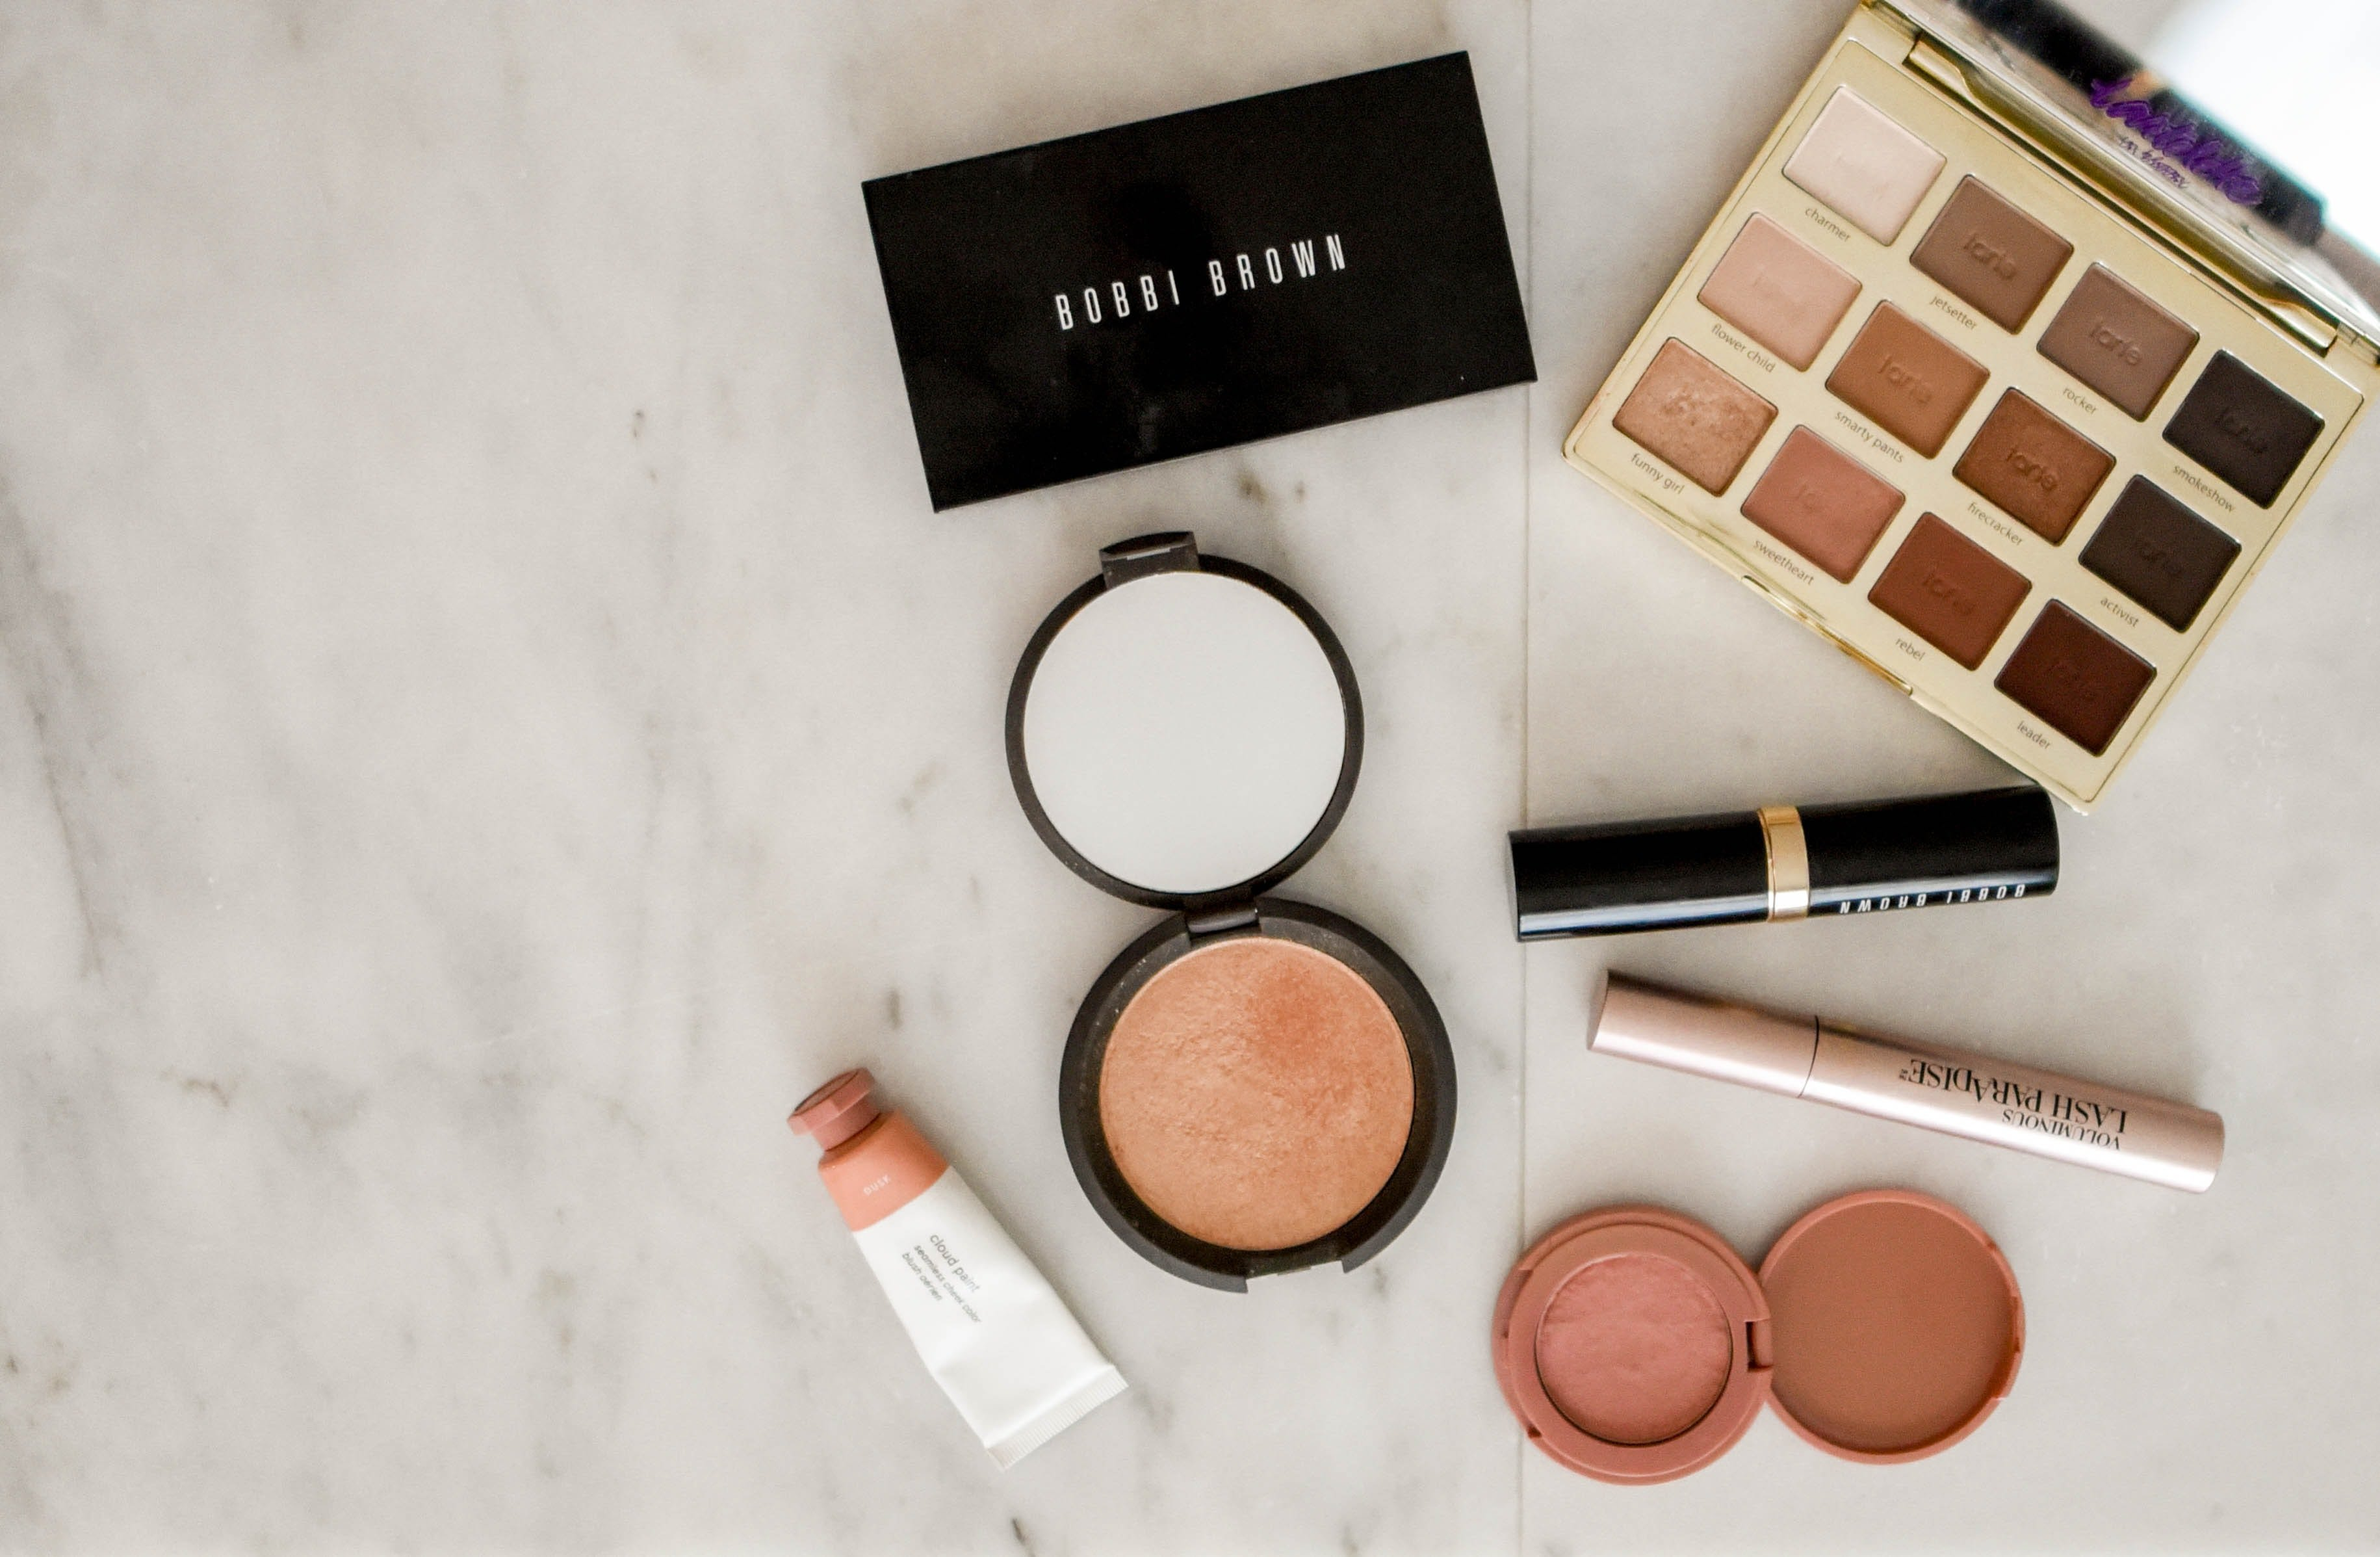 Assorted makeup products on gray surface.